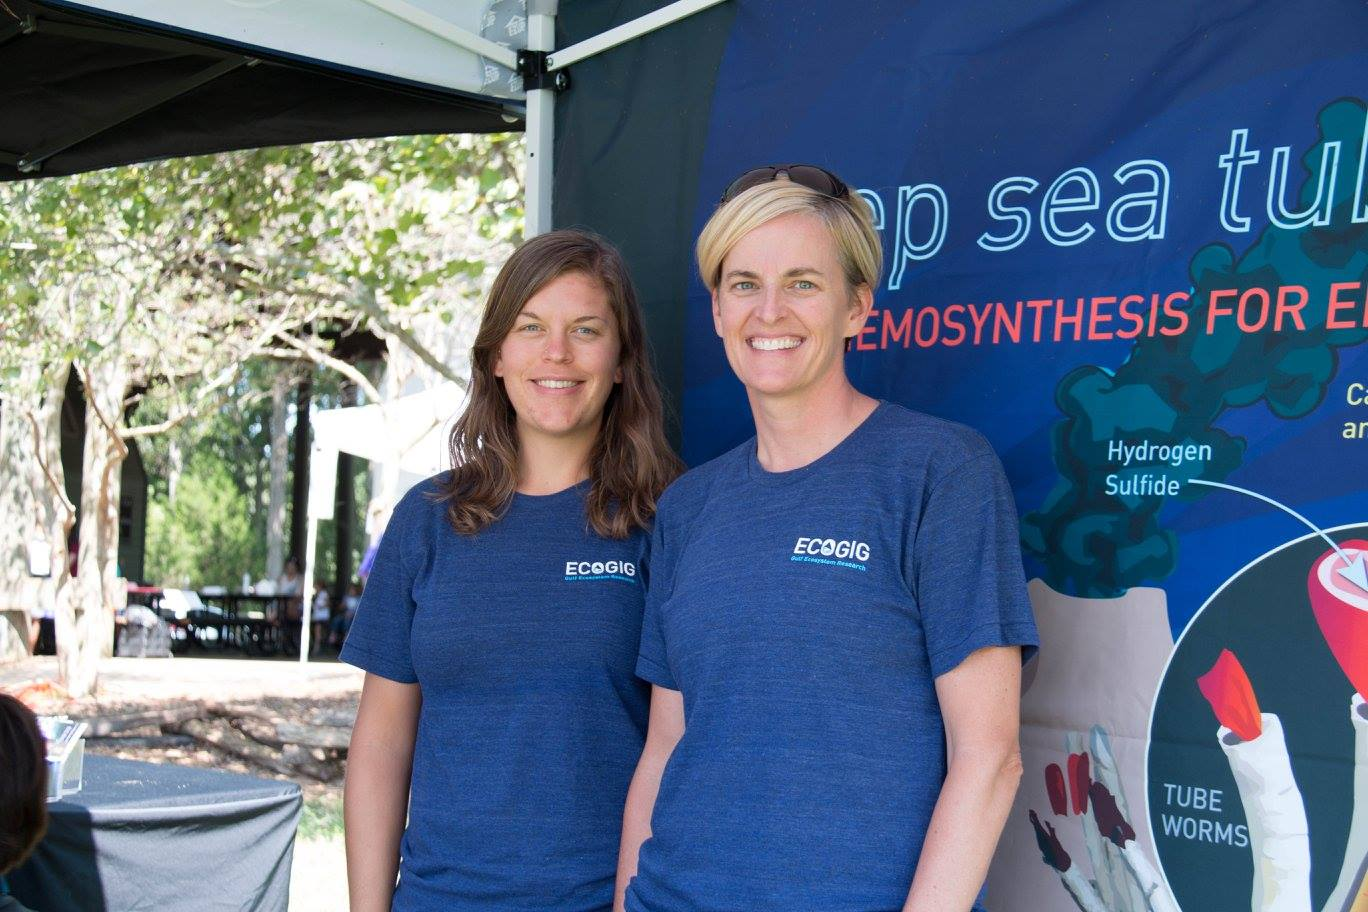 <div style='color:#000000;'><br /><br /><h2>2017 Athens Clarke County Water Festival. ECOGIG outreach staff with our newest information display - deep sea tube worms!! We took part in the Athens Water Festival - A family friendly event all about water, hosted by Athens Clarke County. Local organizations came together to educate the public about all things water! </h2>Photo courtesy of Athens Clarke County.</div>